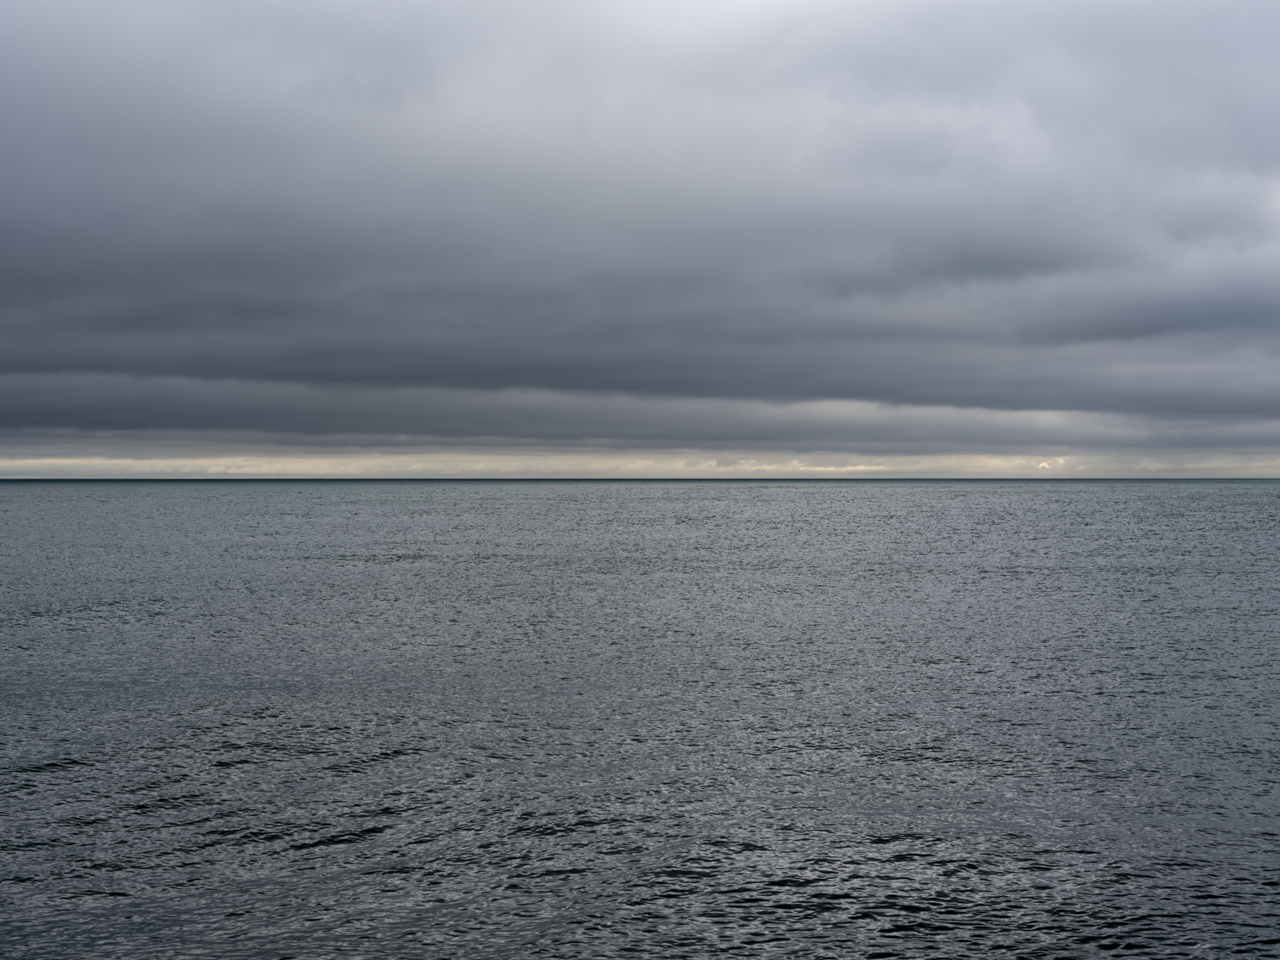 A gray day on Lake Michigan with heavy clouds and a sliver of light on the horizon